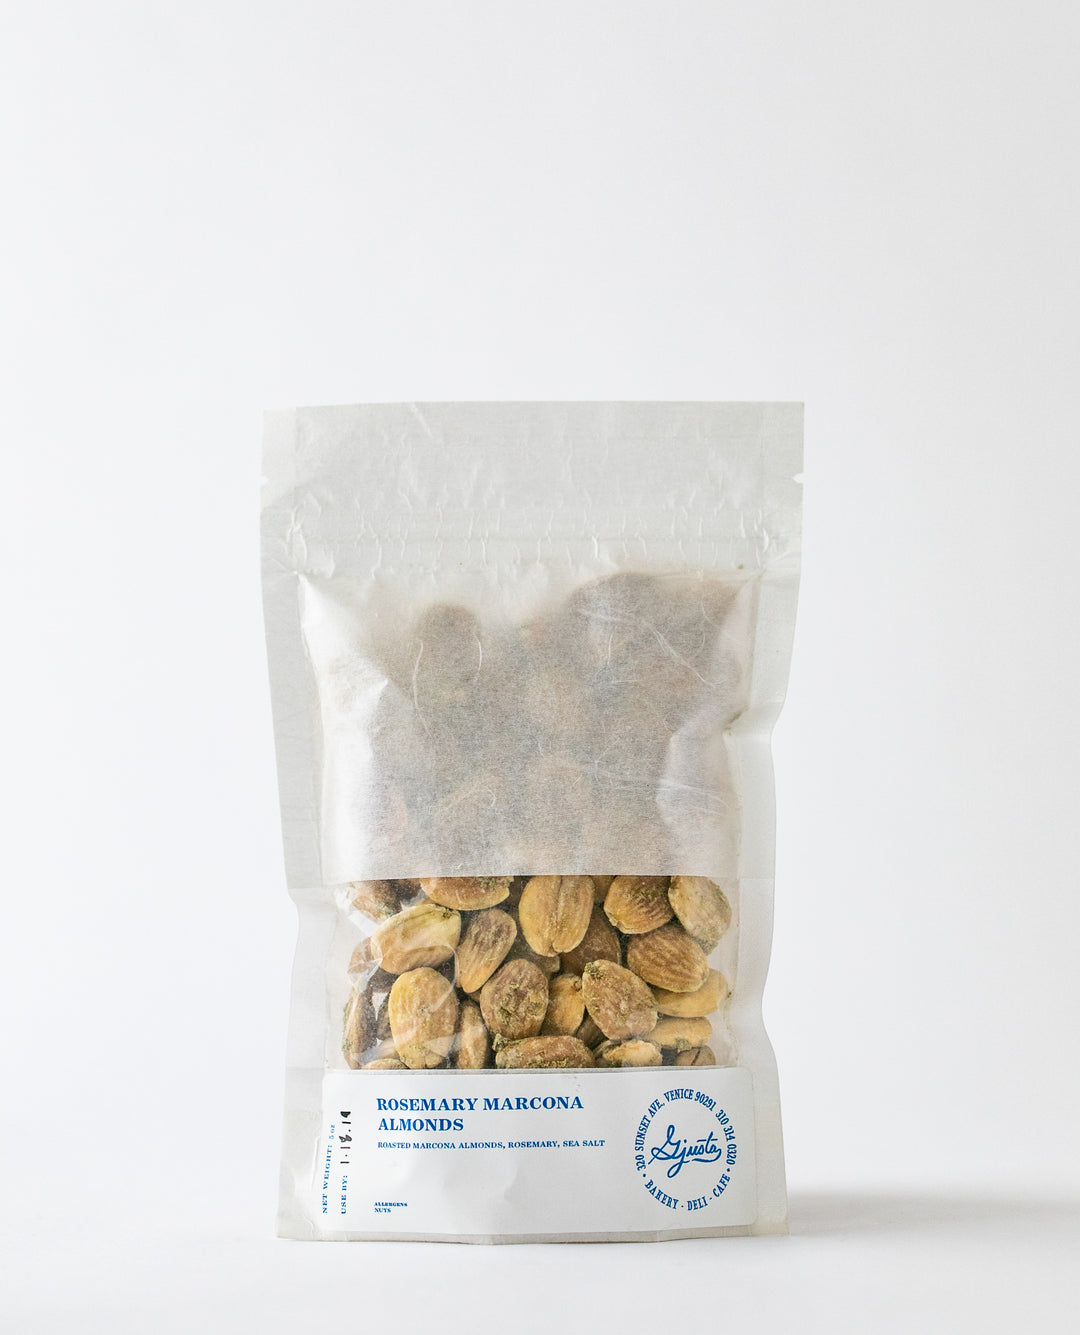 Rosemary Marcona Almonds